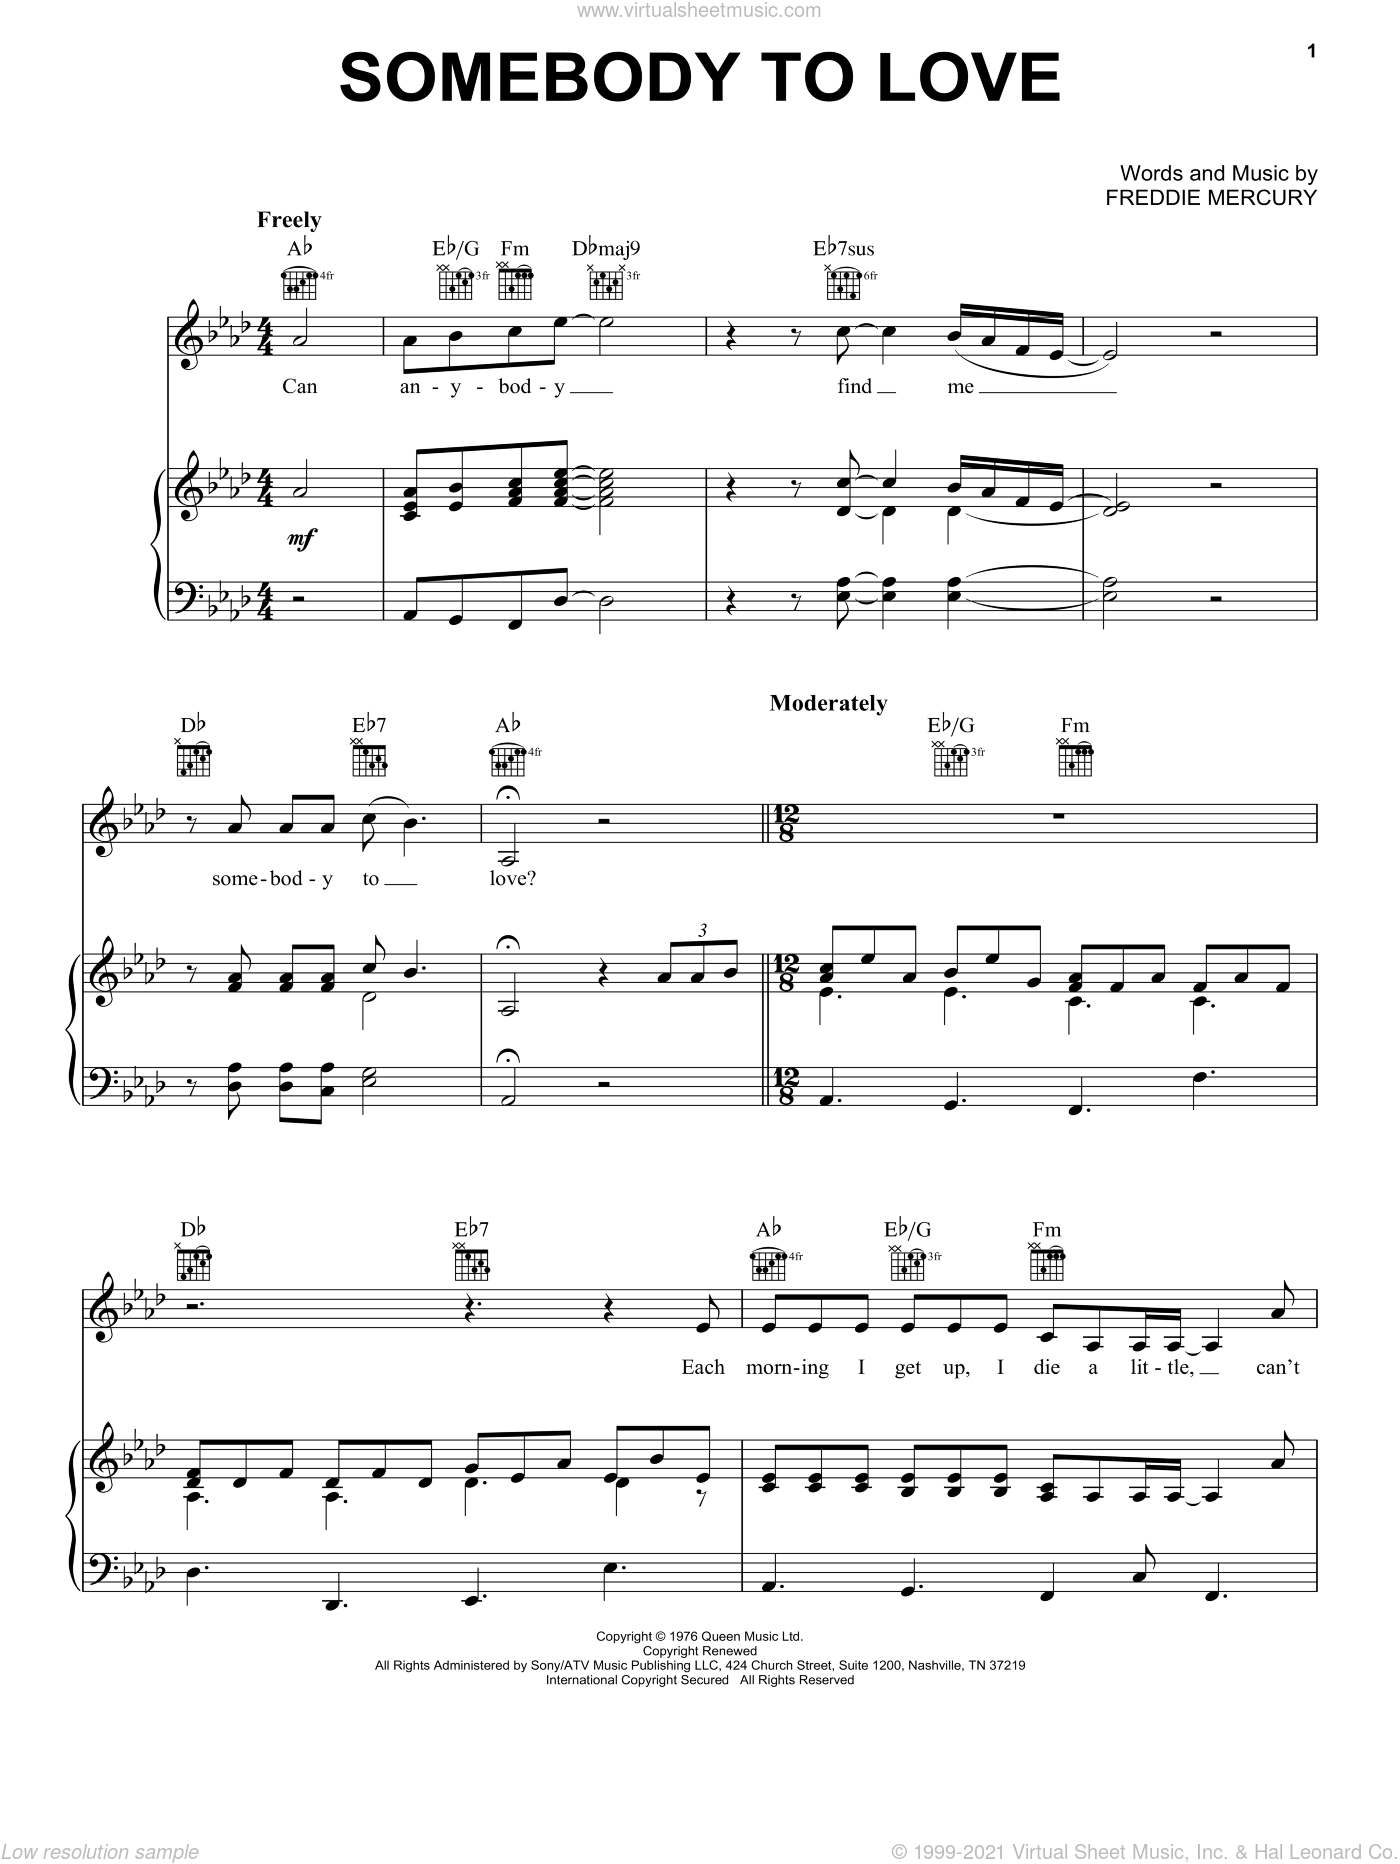 Somebody To Love sheet music for voice, piano or guitar by Queen, Miscellaneous and Freddie Mercury, intermediate skill level